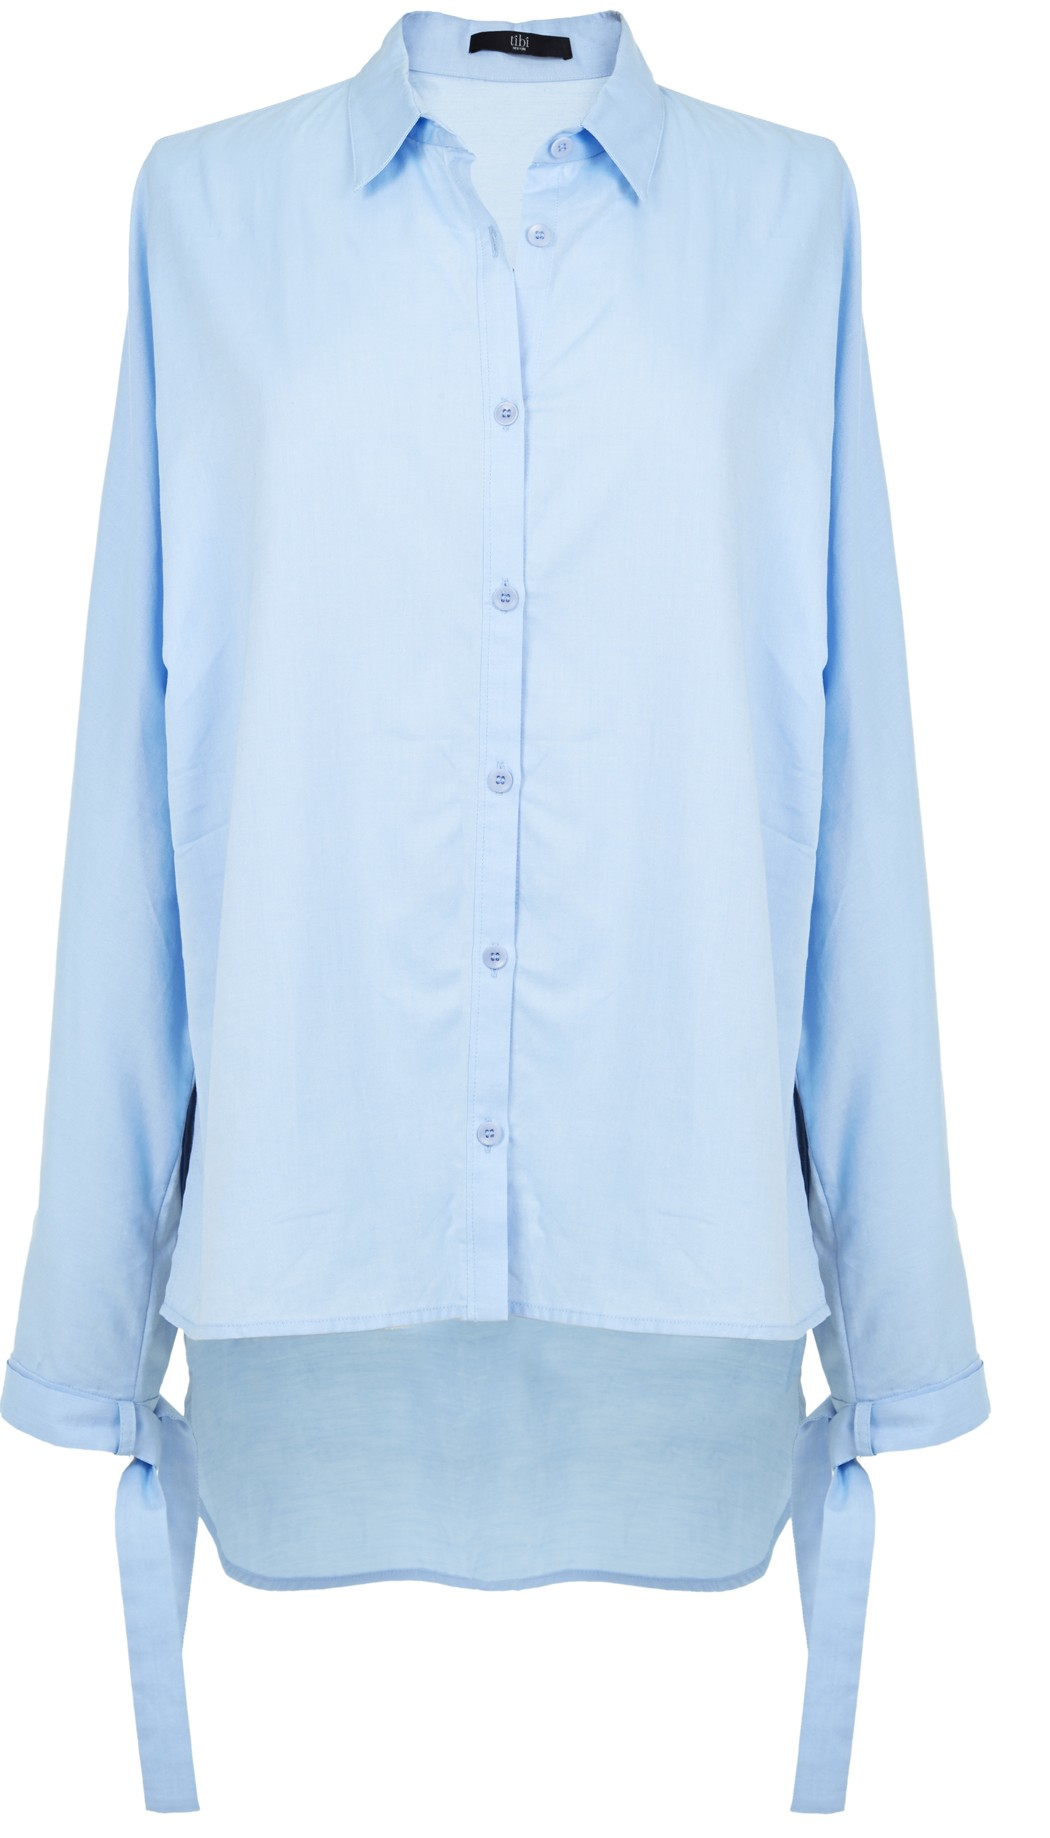 Tibi oxford dolman tie shirt in blue light blue lyst for Oxford shirt with tie